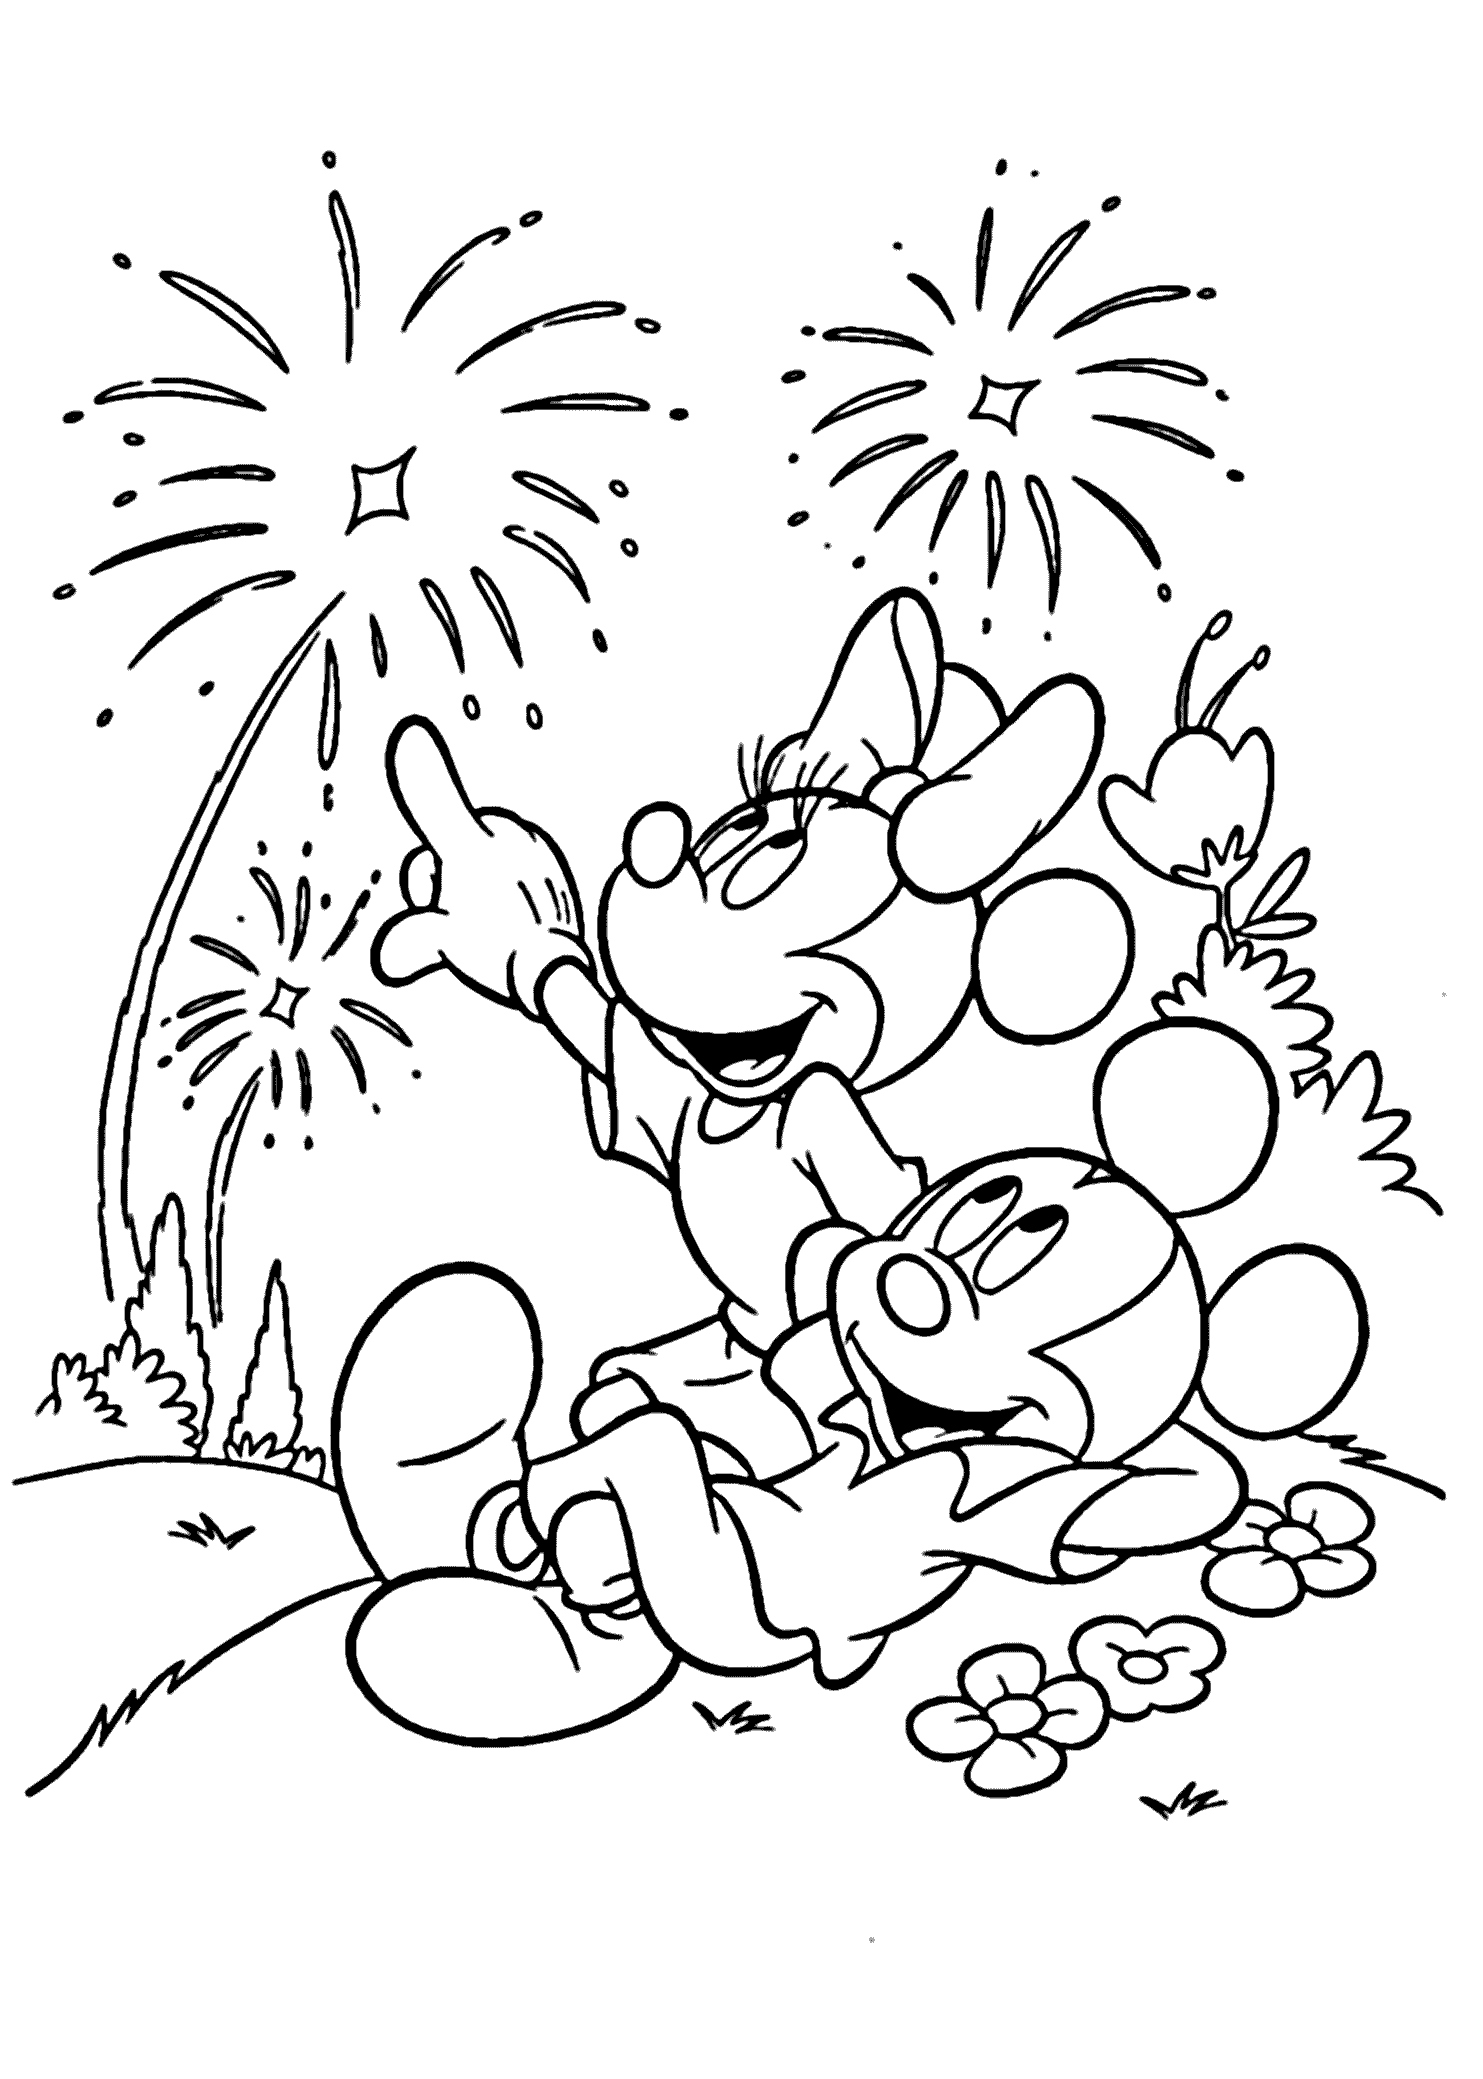 july coloring pictures fourth of july fireworks doodle coloring page free coloring pictures july